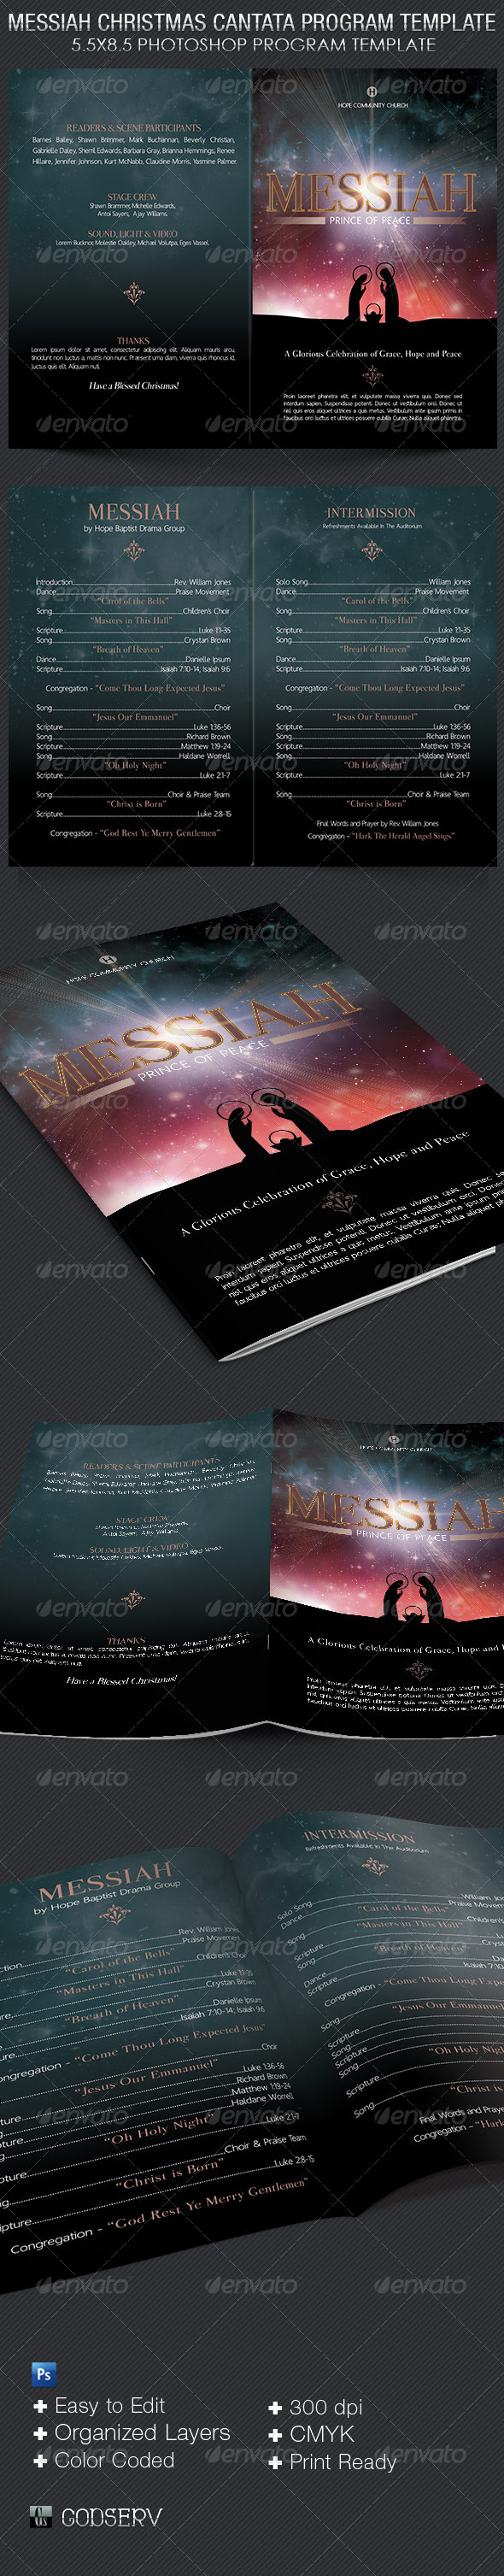 GraphicRiver Messiah Christmas Cantata Program Template 6319250